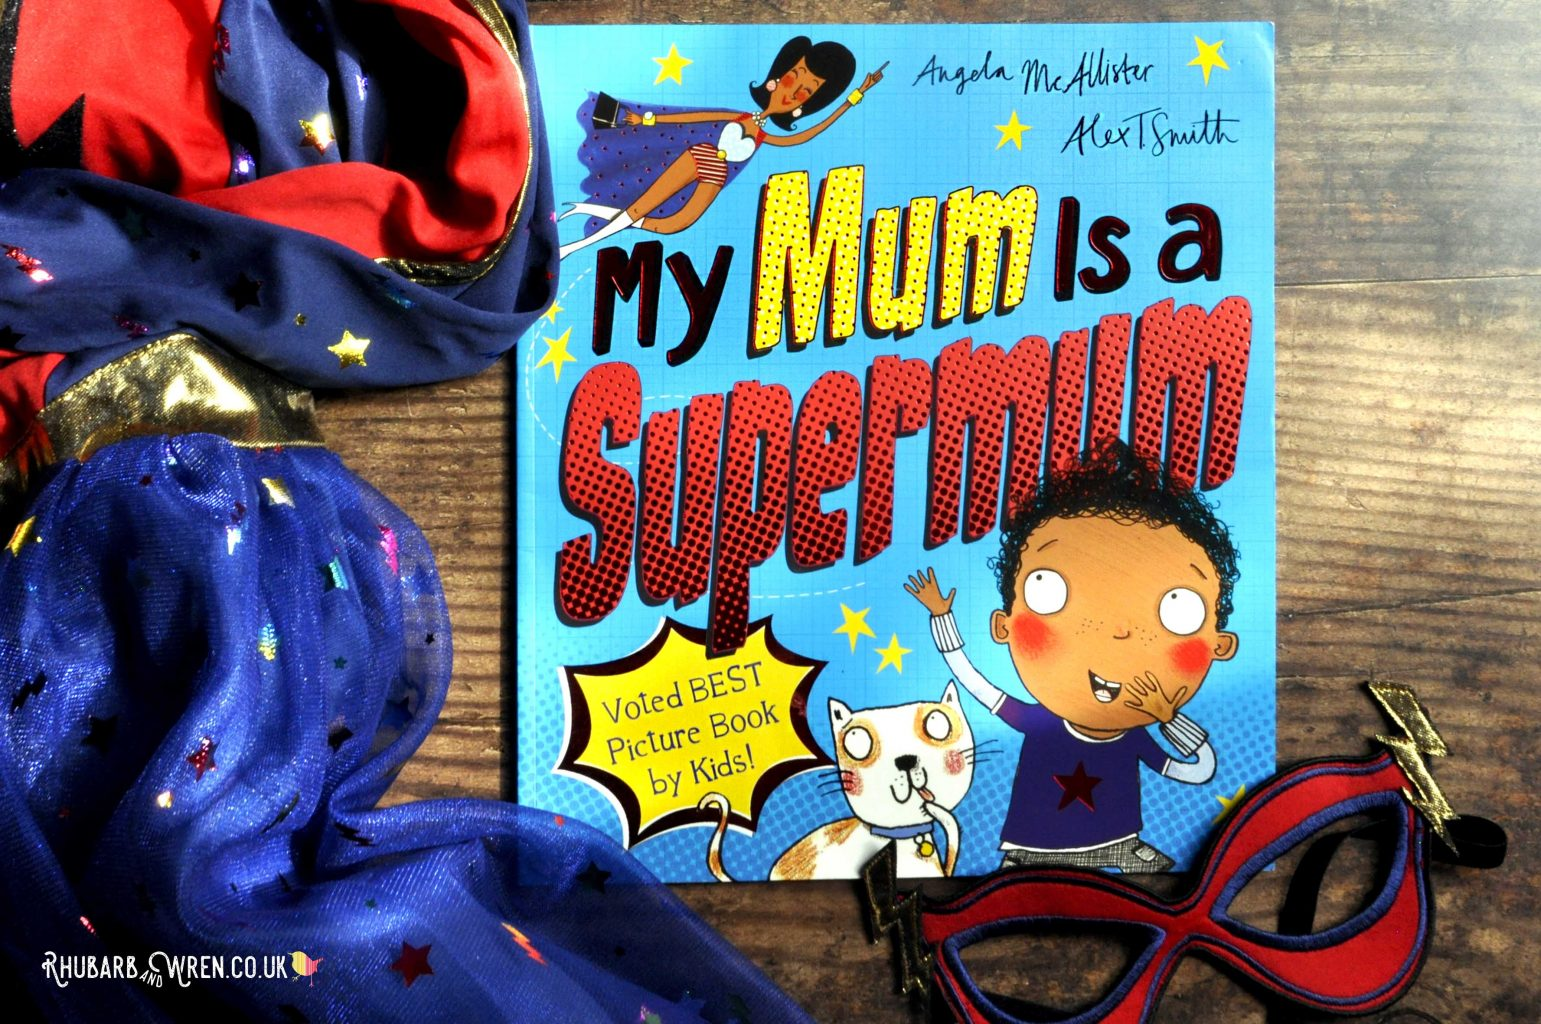 Children's picture book 'My Mum is a Supermum'